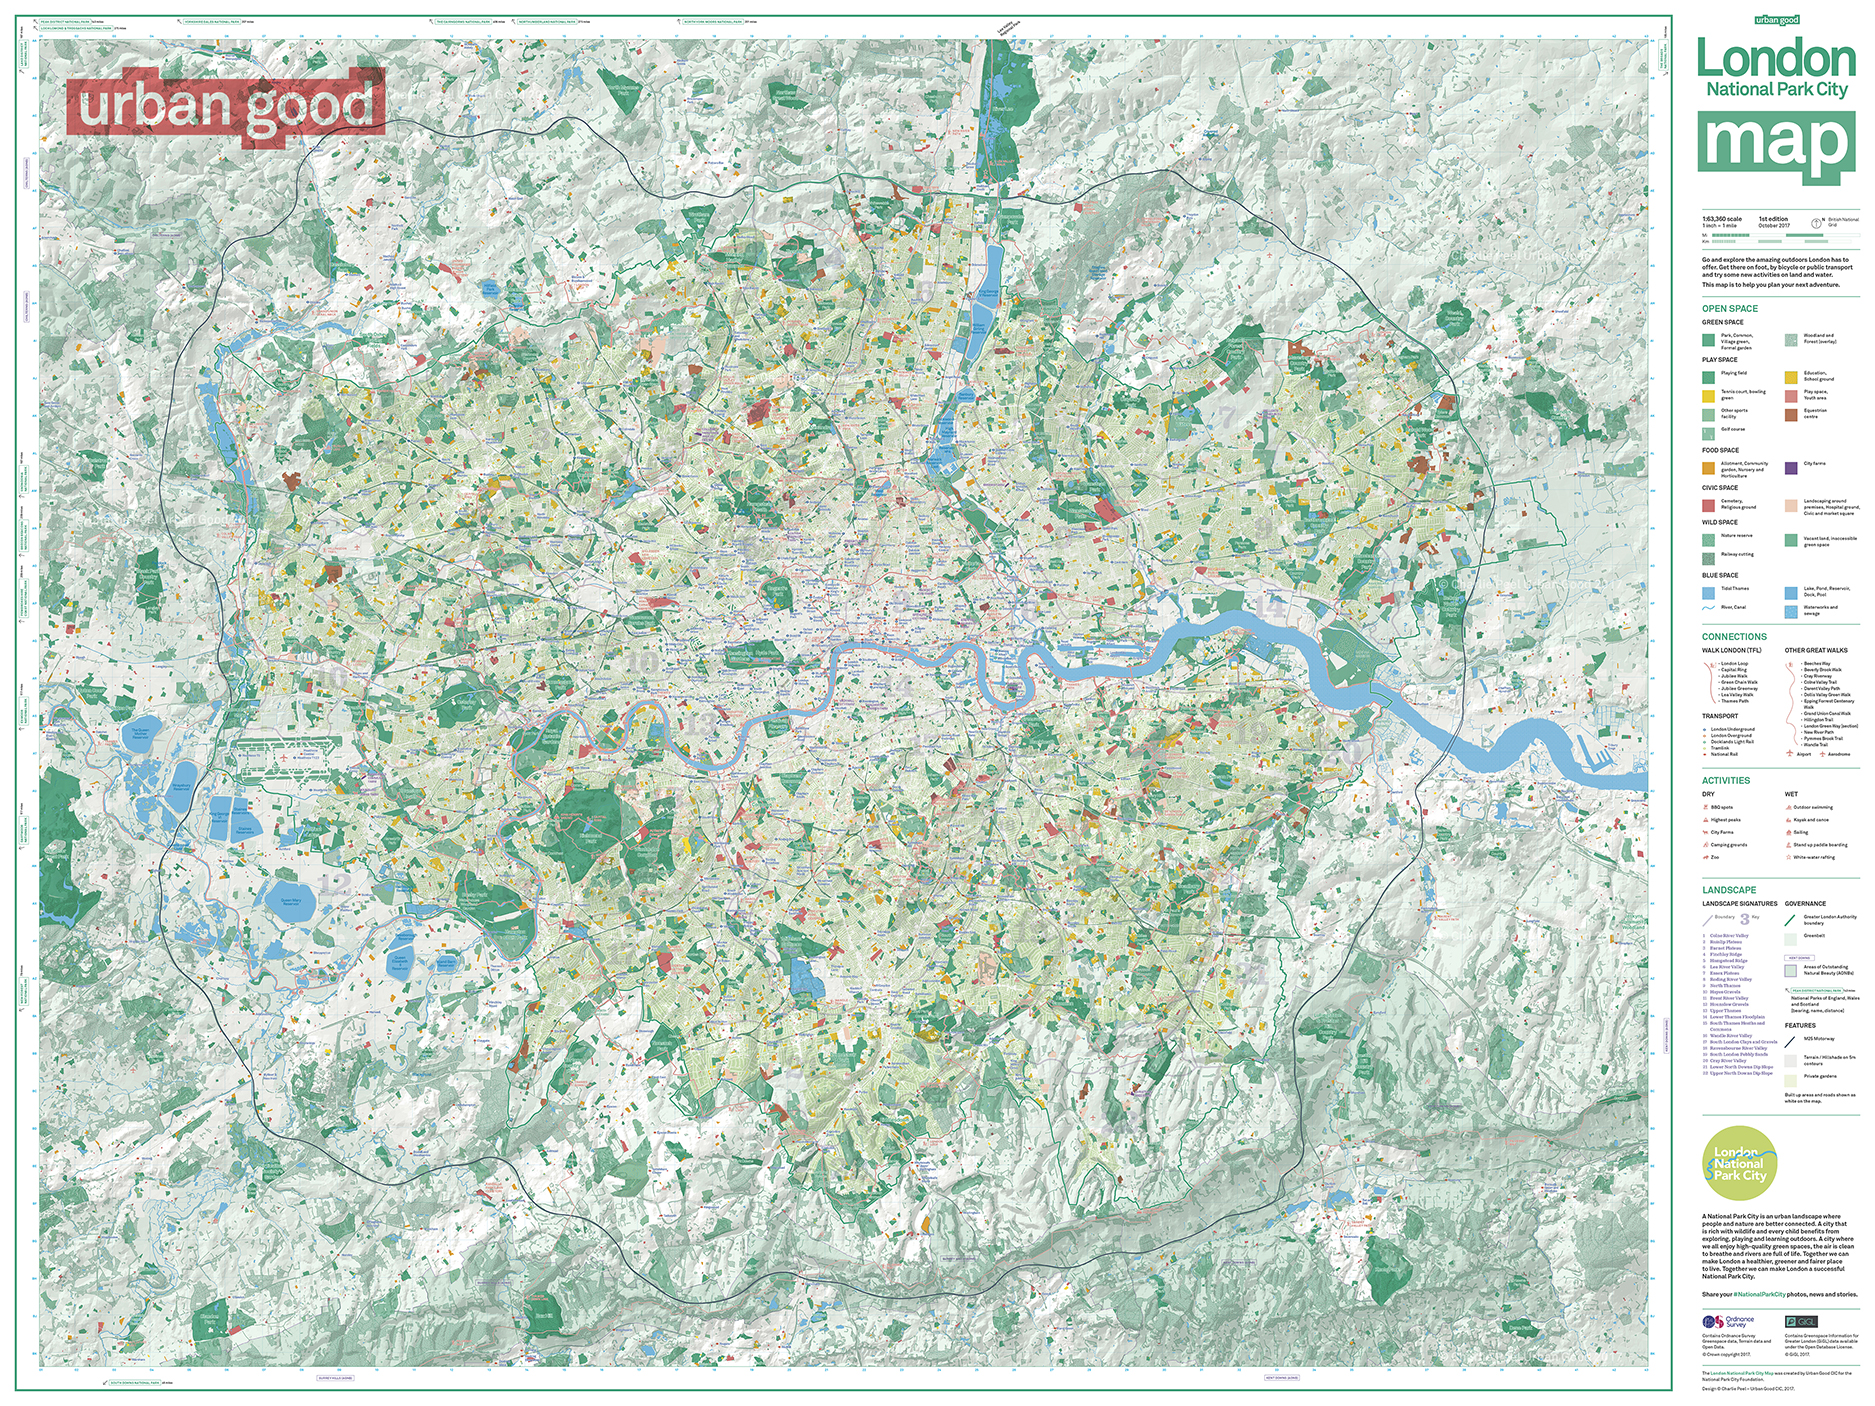 Urban Good's giant green map of London's open spaces (available to order in the shop)